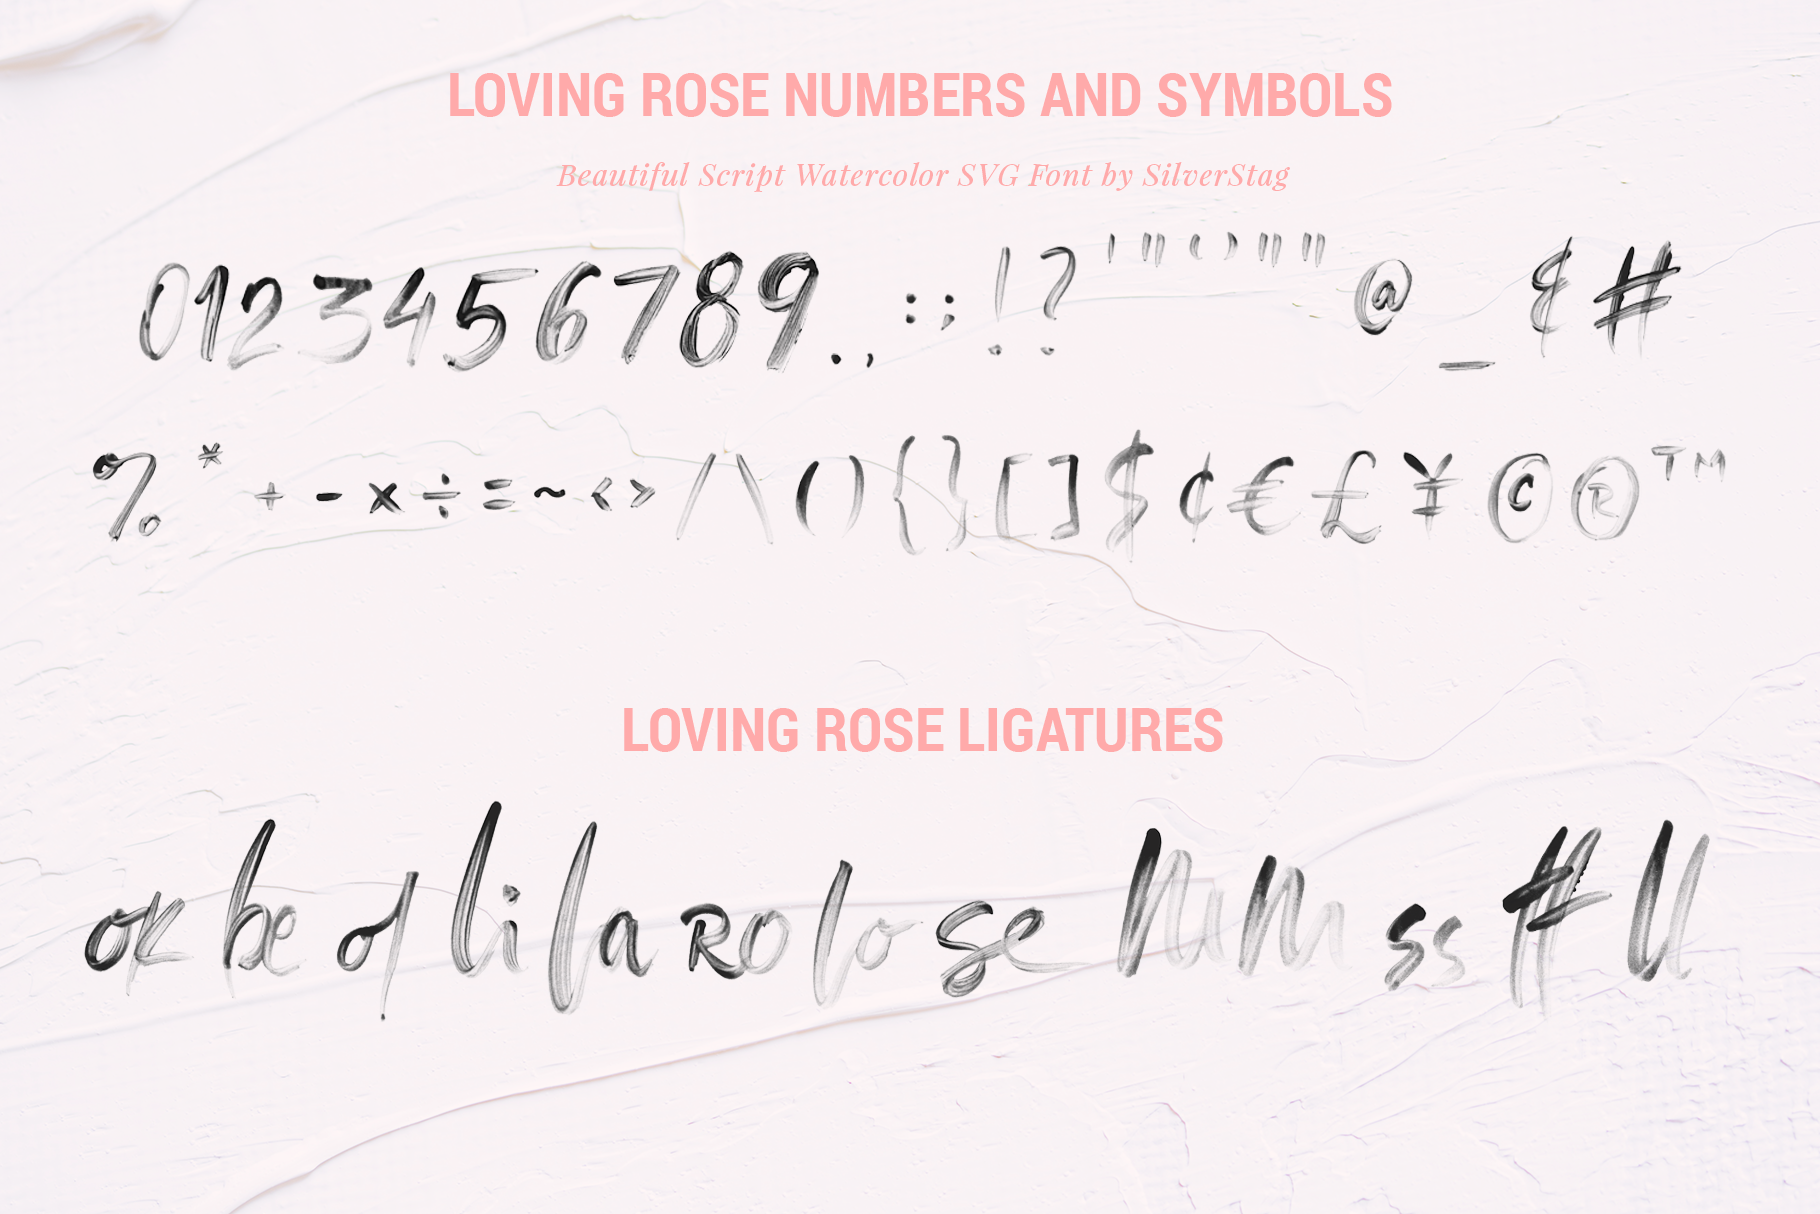 Loving Rose SVG Watercolor Font Pack - Hand Drawn Font example image 11